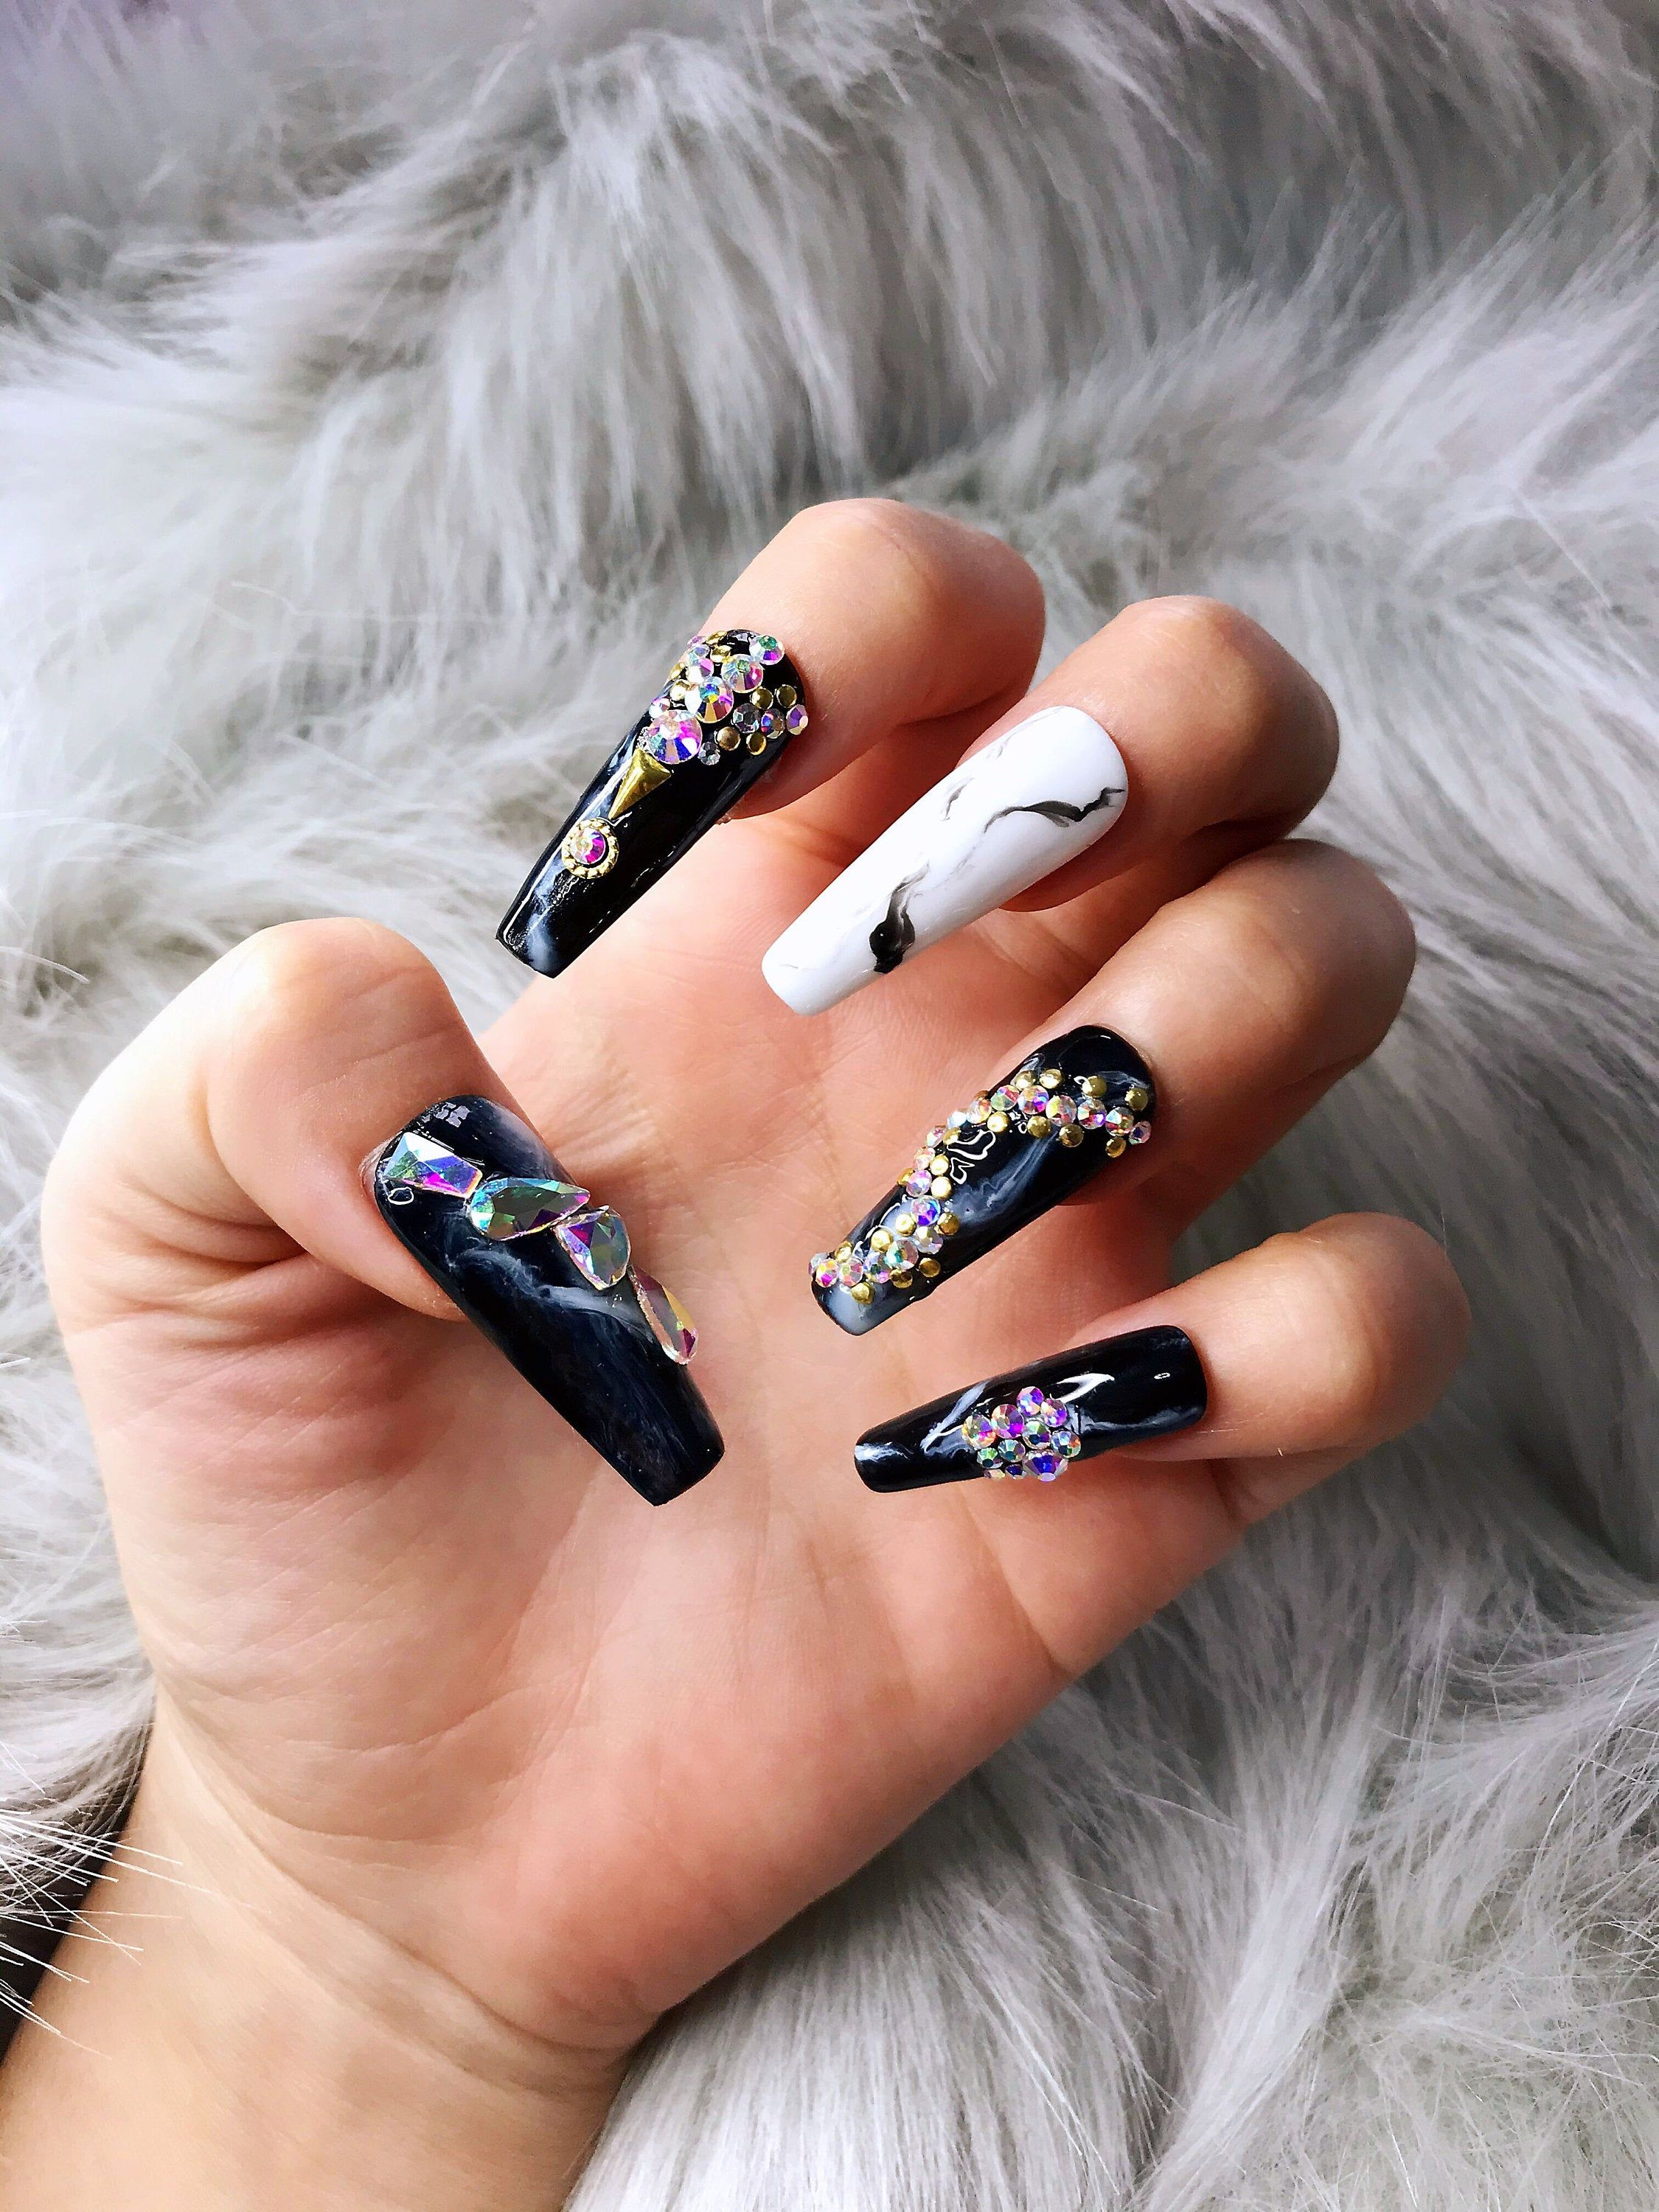 Marble Long Coffin Crystal Accent Press On Nails Press On Etsy In 2020 Press On Nails Glue On Nails Fake Nails